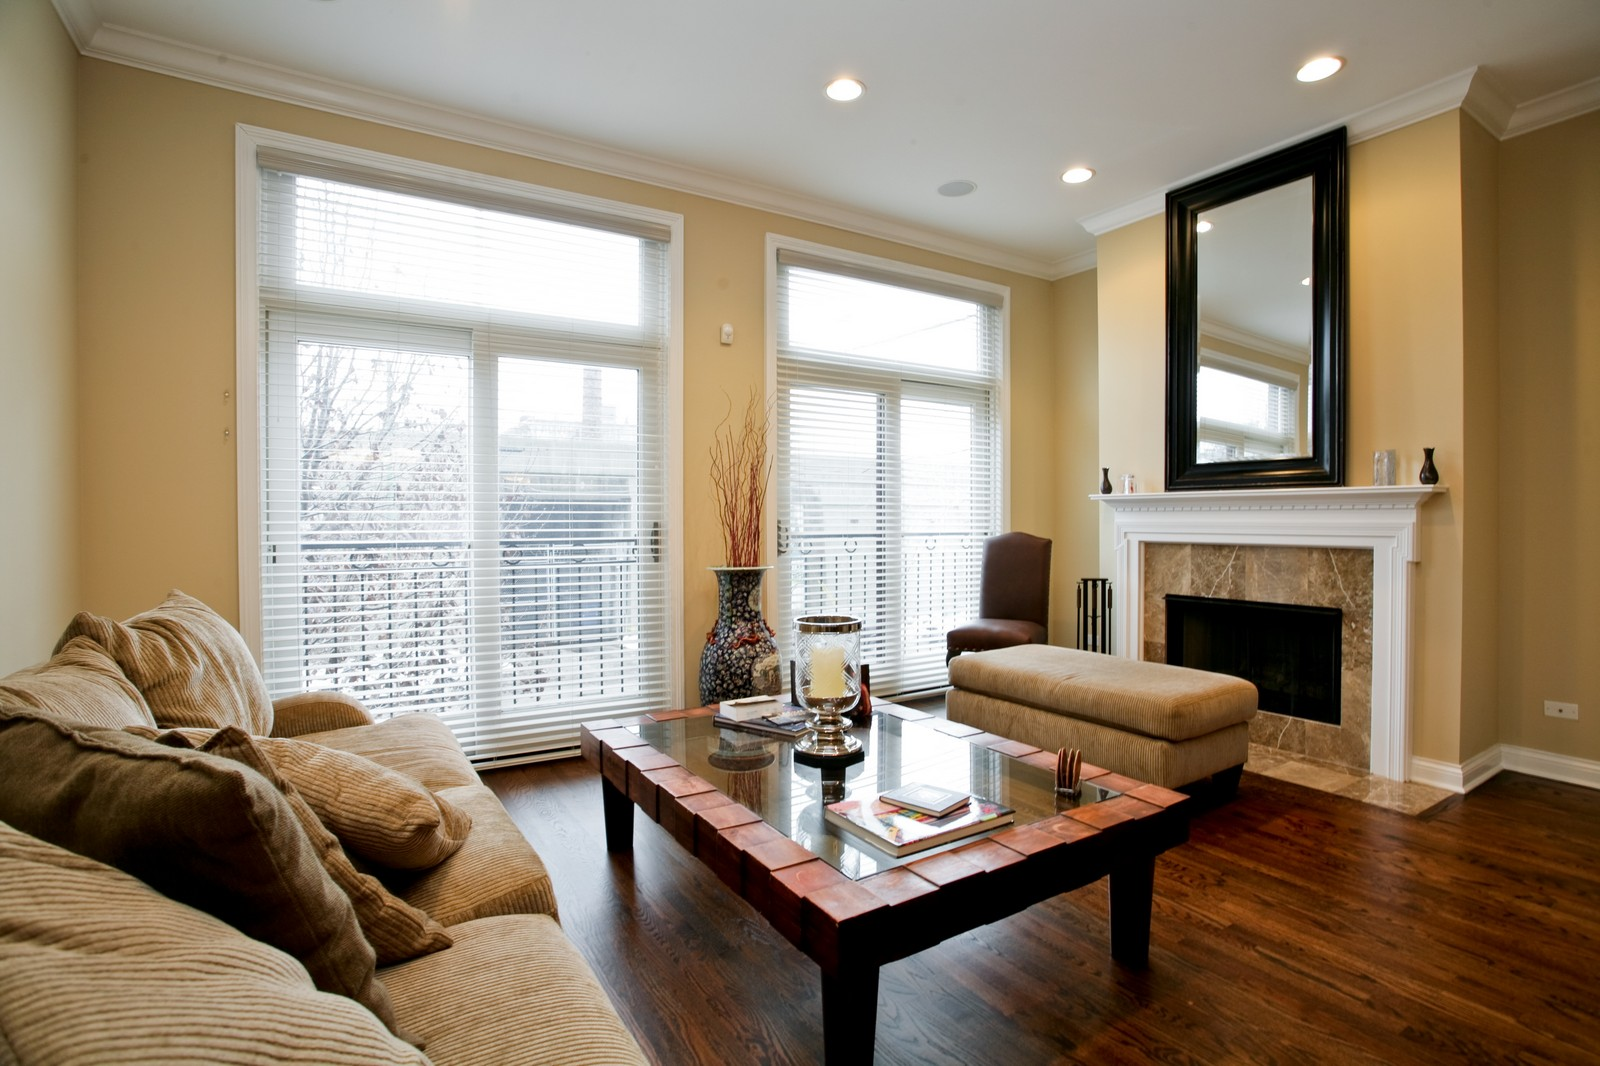 Real Estate Photography - 942 W Hubbard, Chicago, IL, 60622 - Living Room